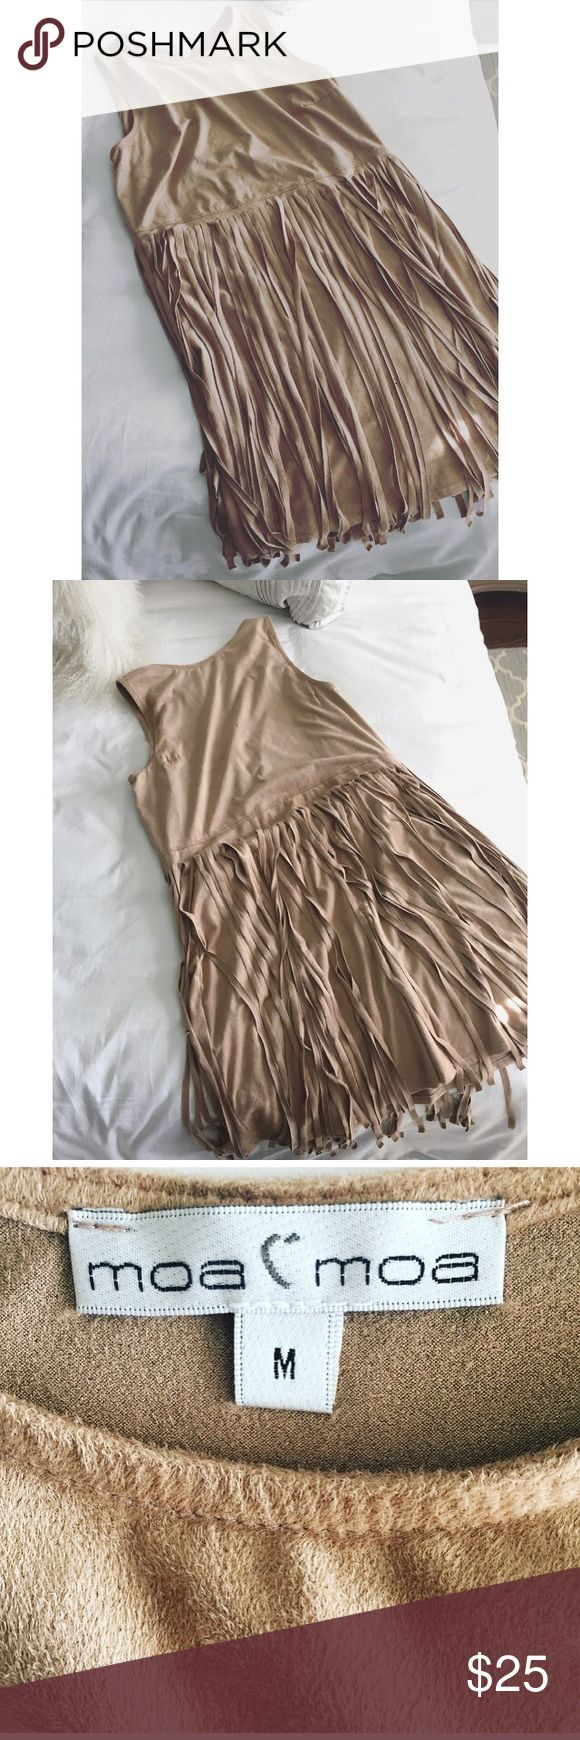 Moa Moa Suede Fringe Dress This super comfy Moa Moa suede camel colored fringed dress is perfect for an evening out or drinks with a friend. This girl is smoke free/pet free and takes care of everything I own. Moa Moa Dresses Mini